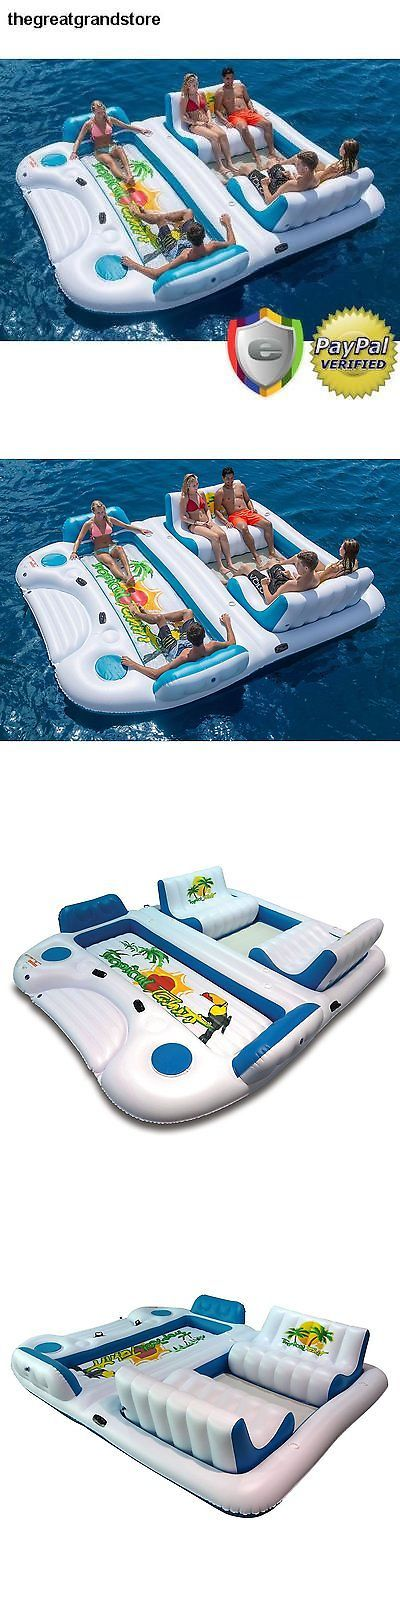 Inflatable Floats and Tubes 79801: Giant 6 Person Inflatable Raft Pool Tropical Tahiti Ocean Floating Island Huge L BUY IT NOW ONLY: $289.5